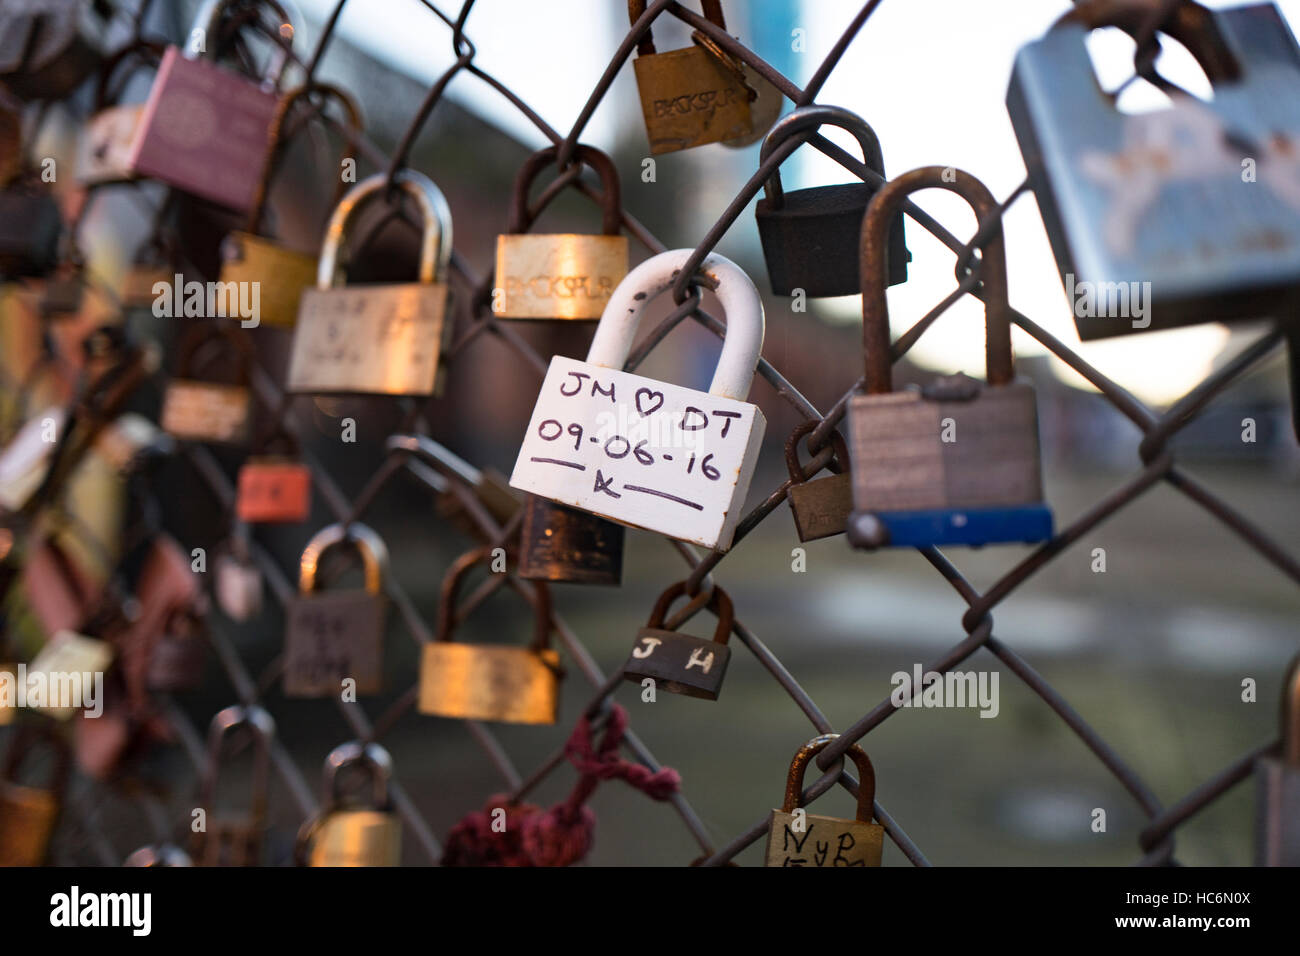 Love padlocks on wire fence outside Shoreditch High Street station Stock Photo